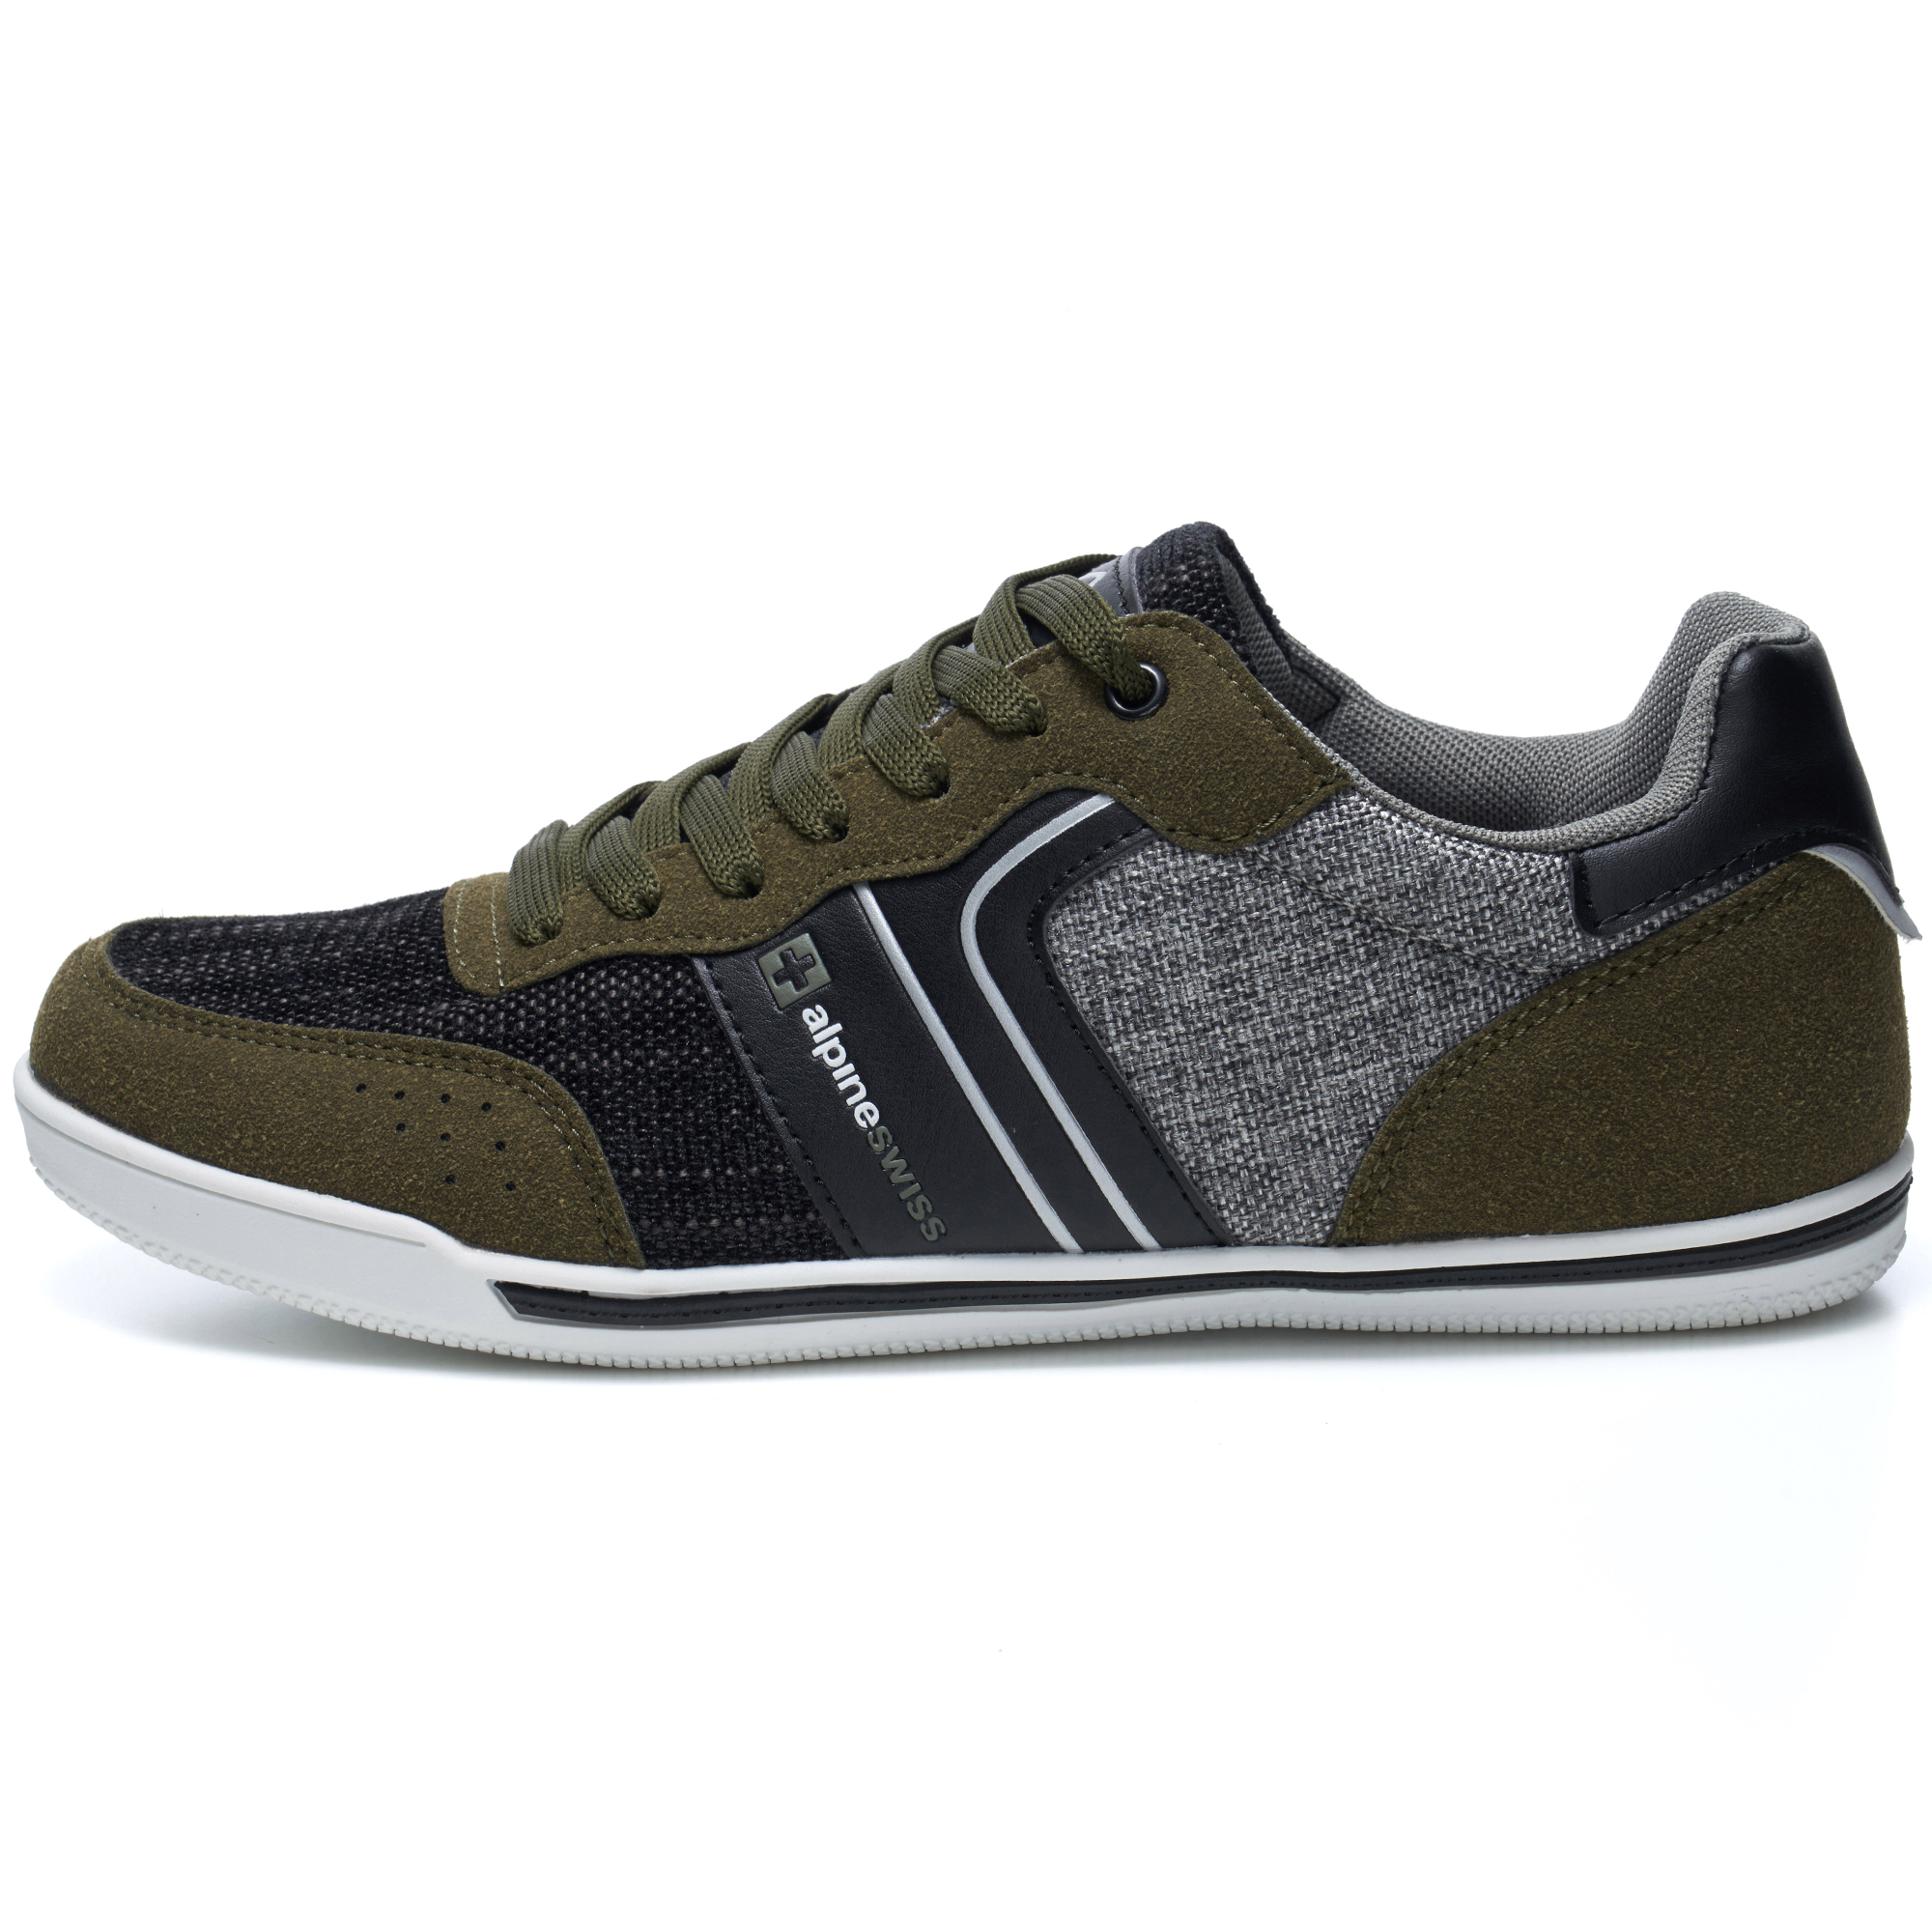 Alpine-Swiss-Liam-Mens-Fashion-Sneakers-Suede-Trim-Low-Top-Lace-Up-Tennis-Shoes thumbnail 41